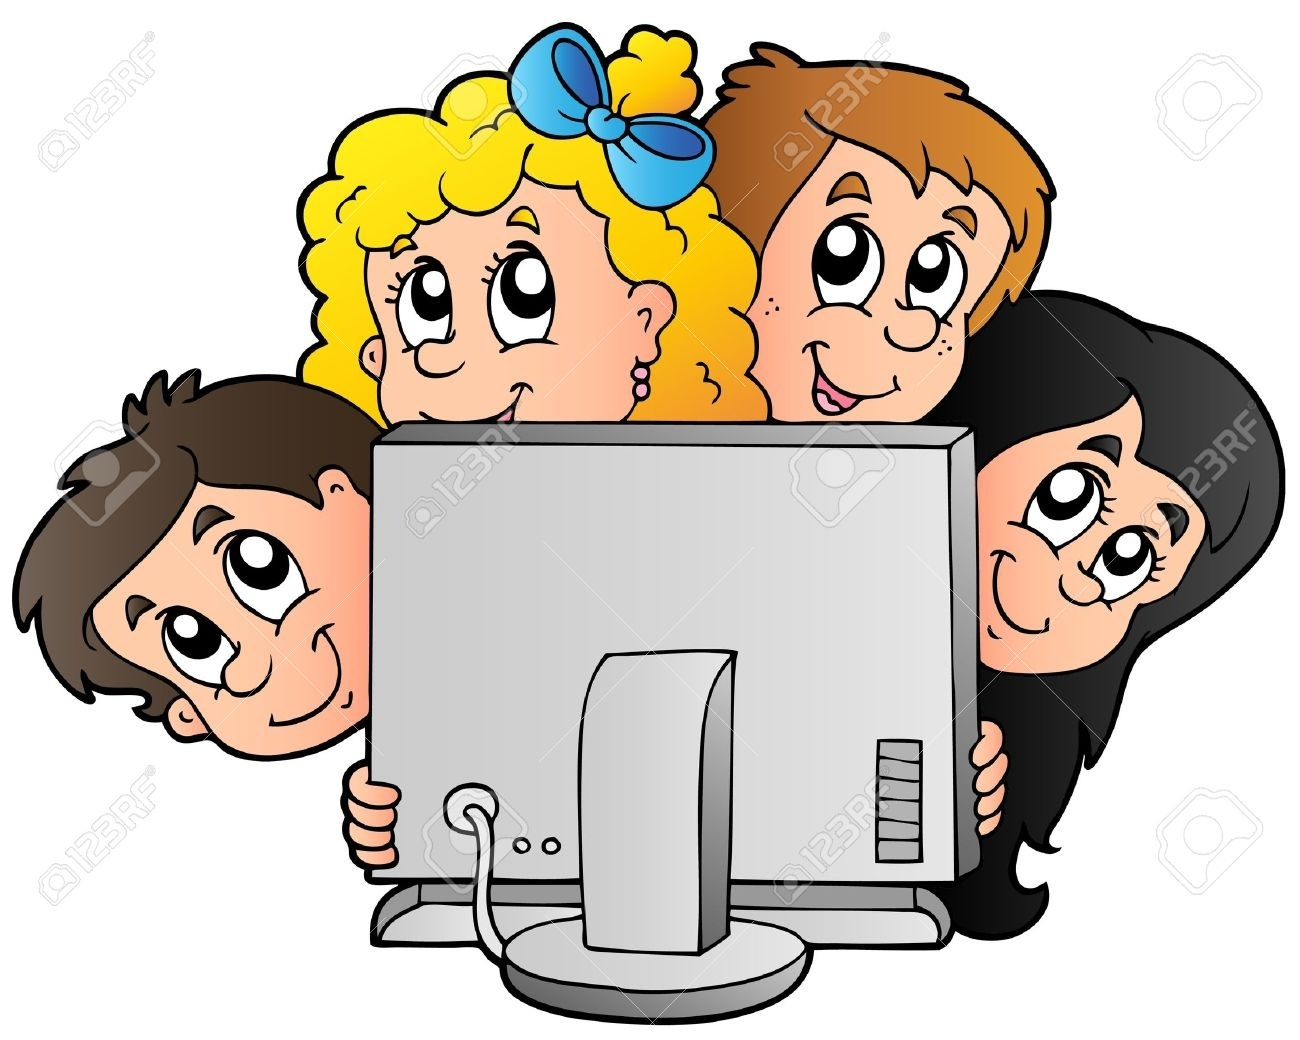 Cartoon Kids With Computer.